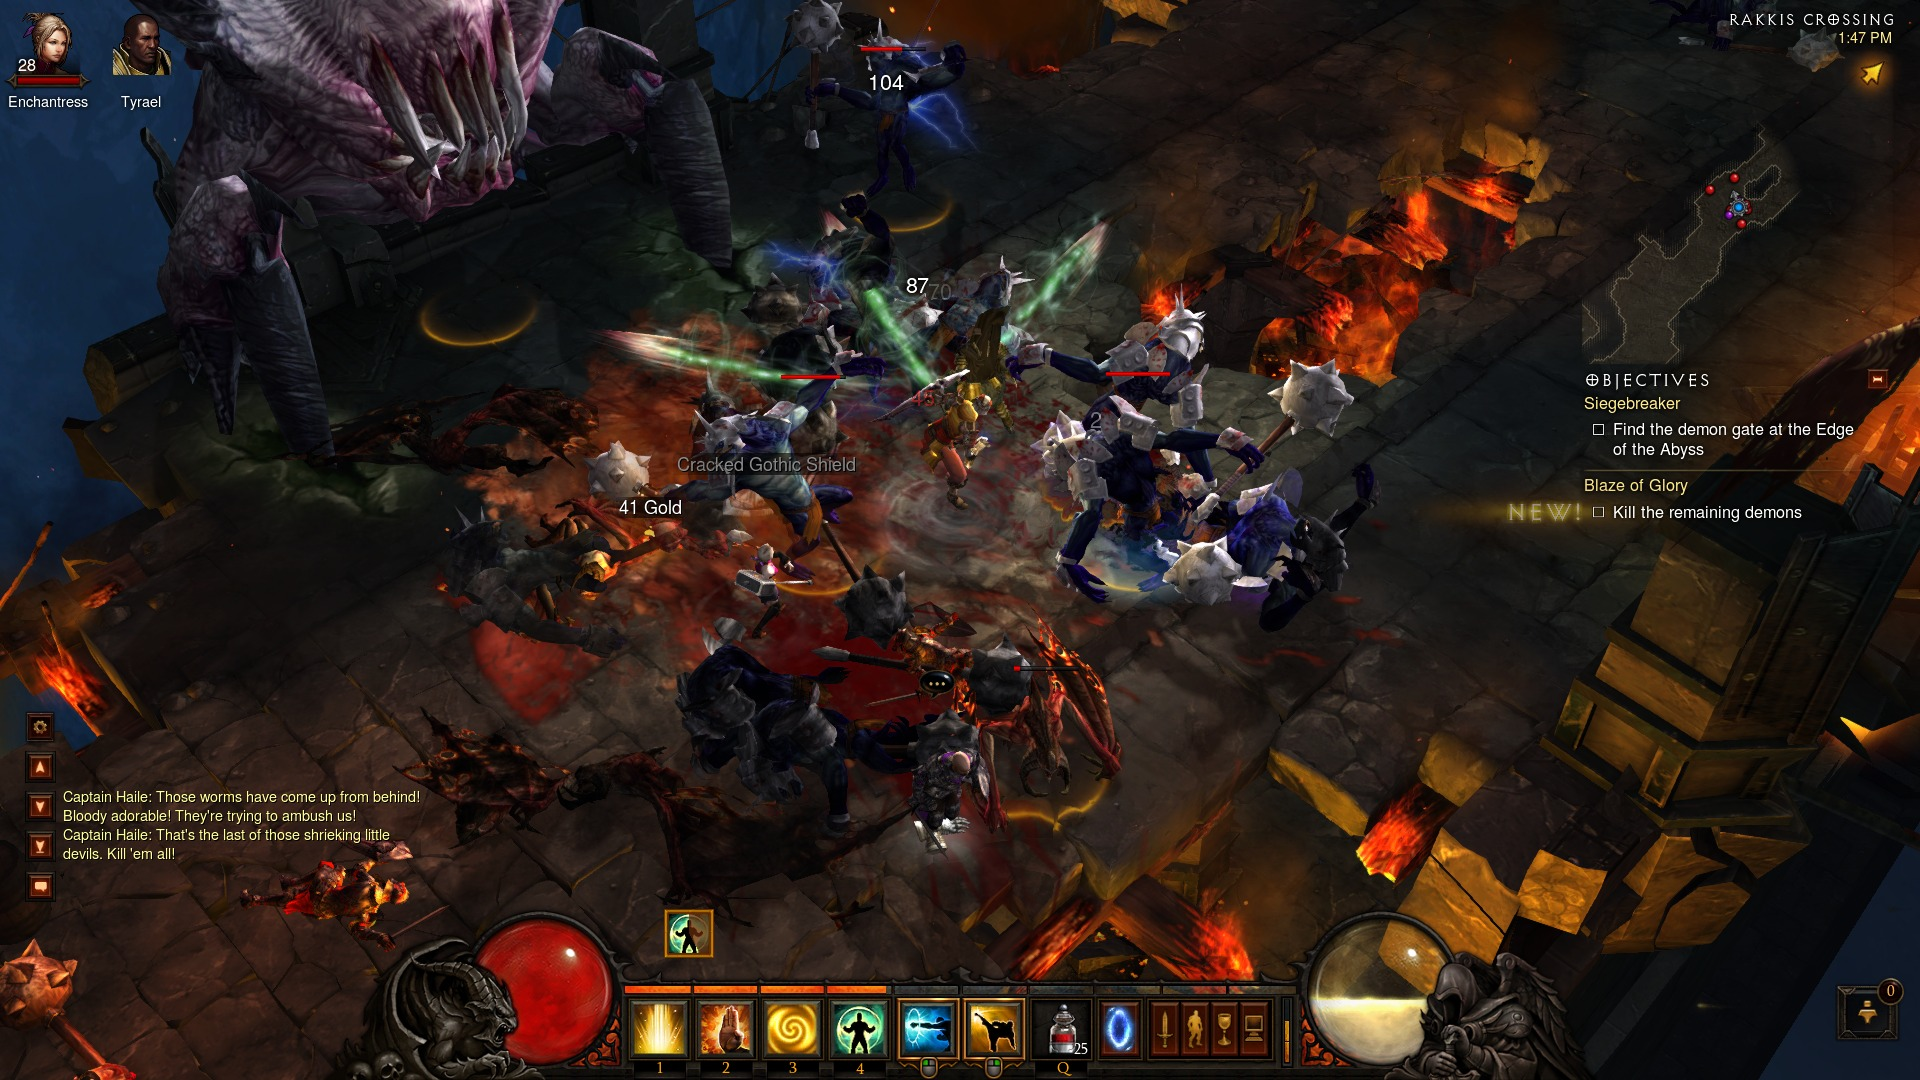 Diablo 3 multiple enemies